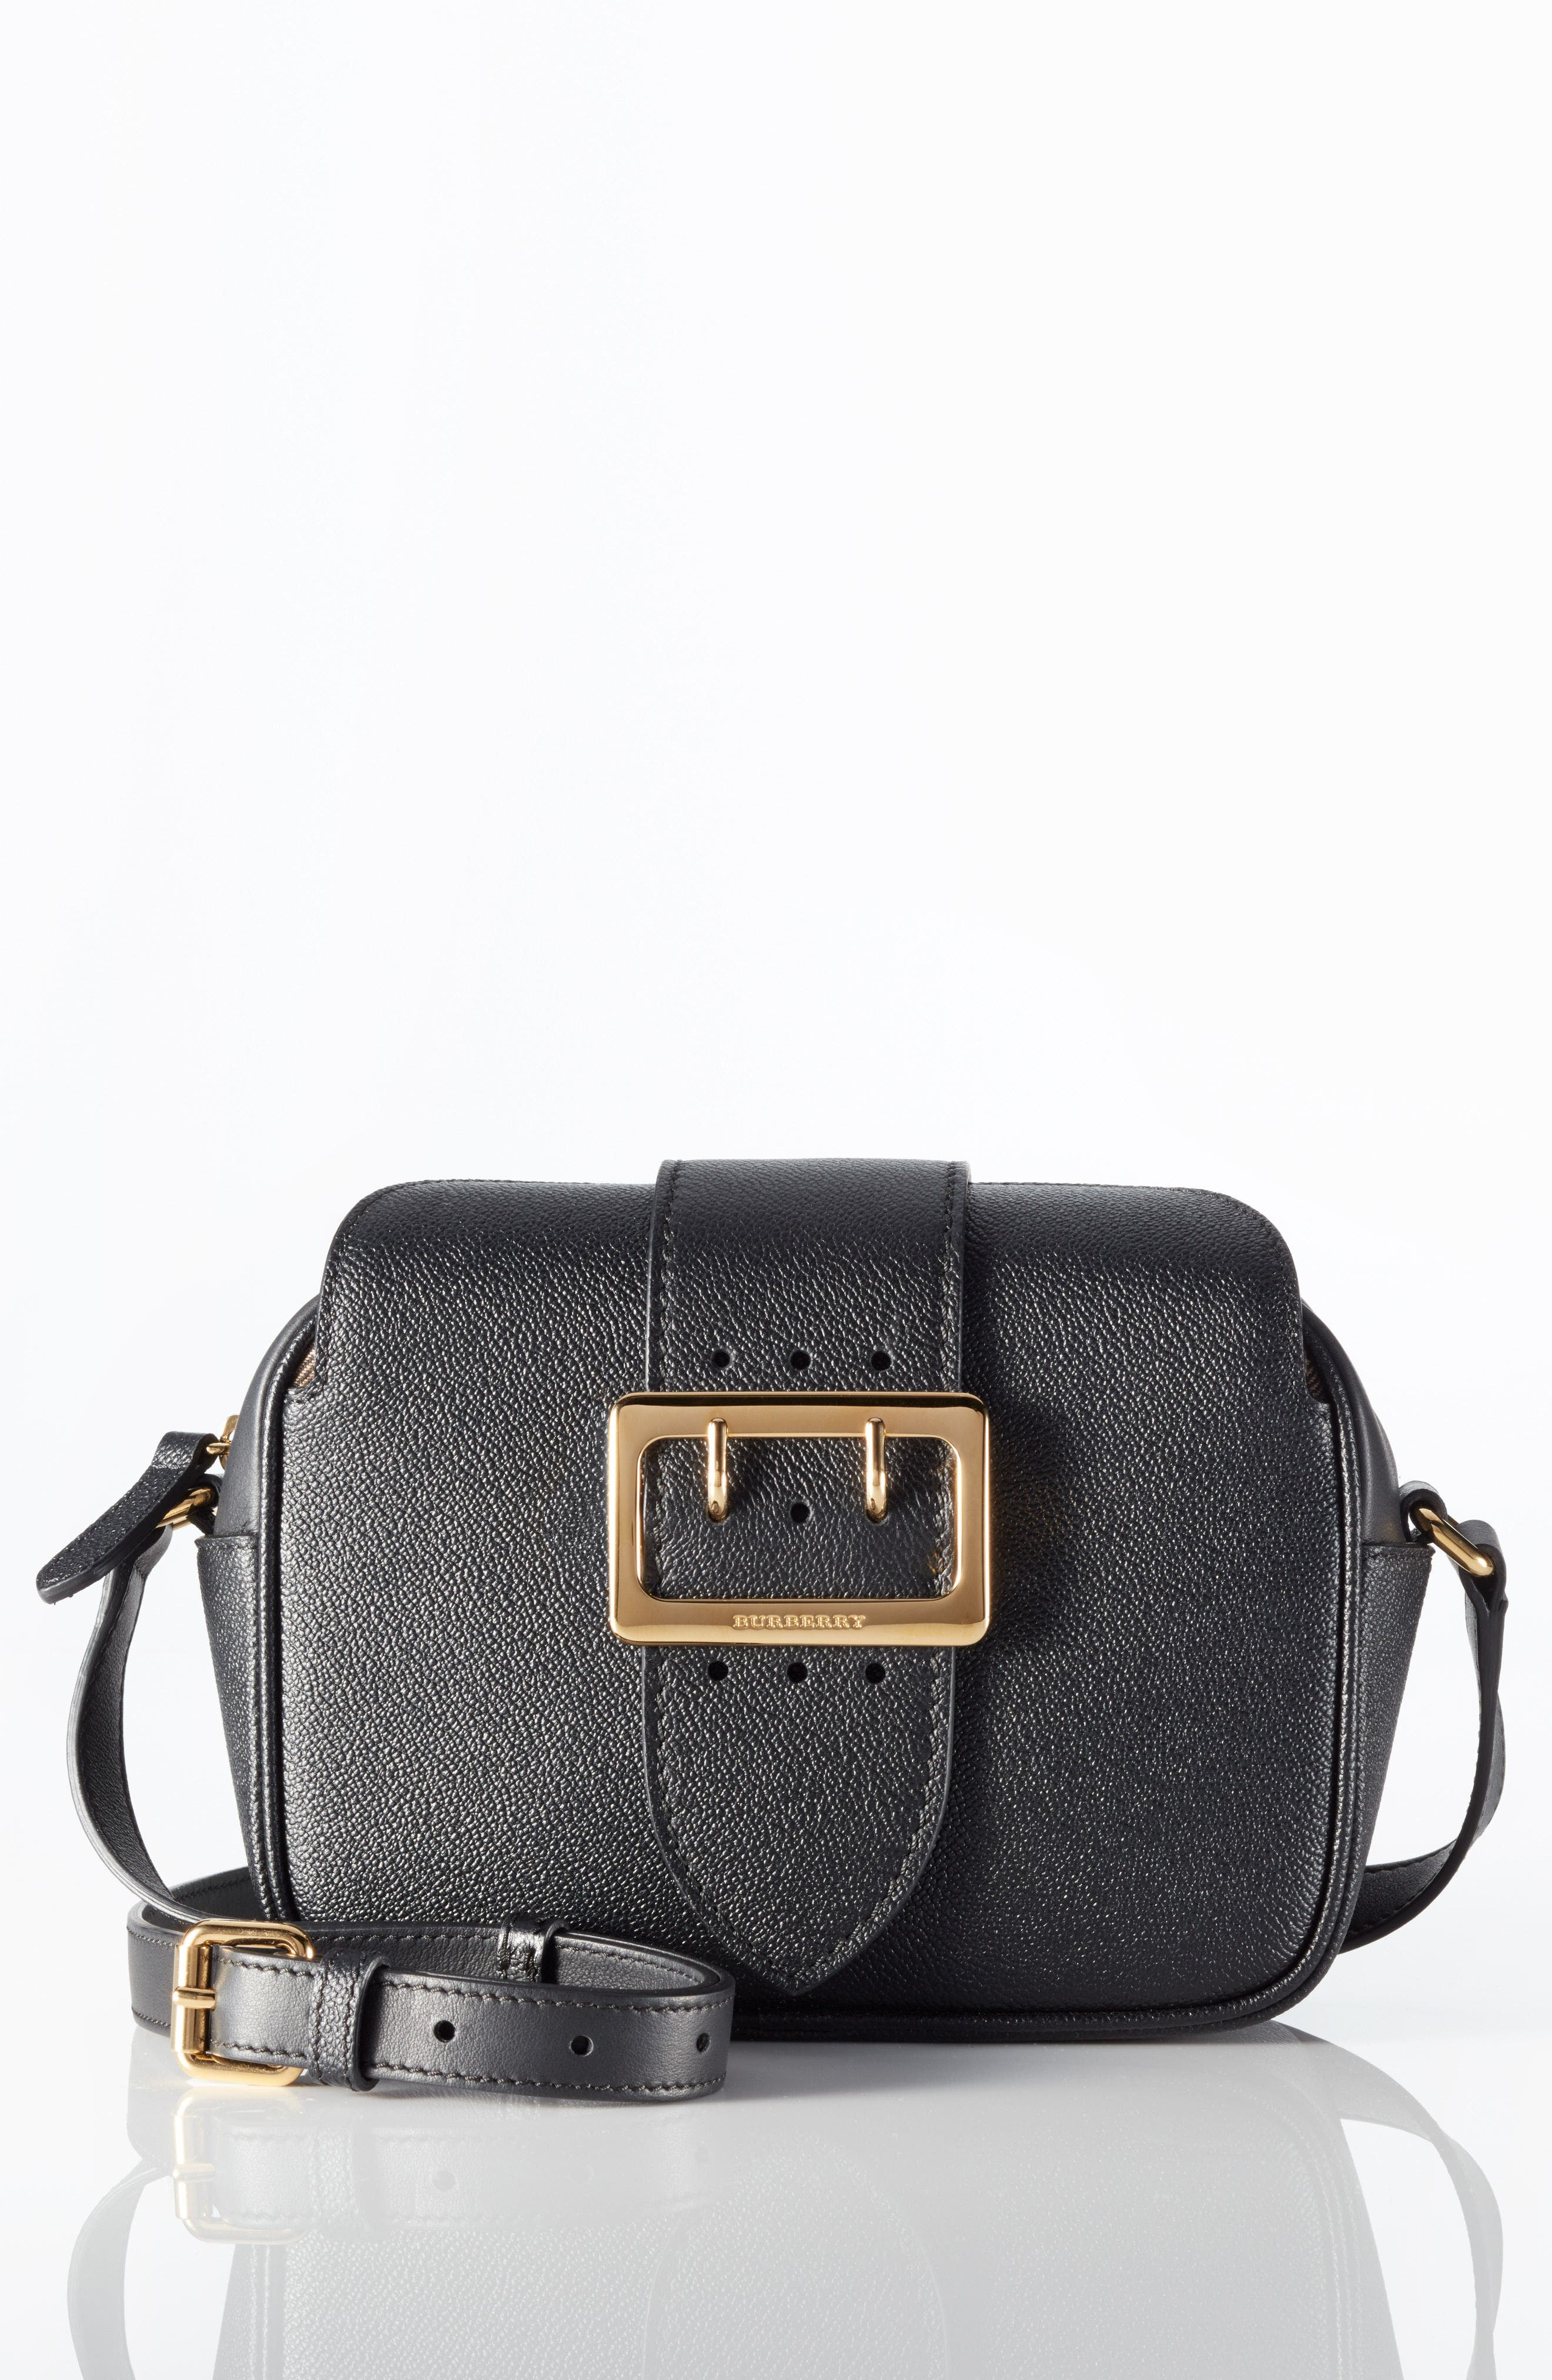 Small Buckle Leather Crossbody Bag,                             Alternate thumbnail 6, color,                             001